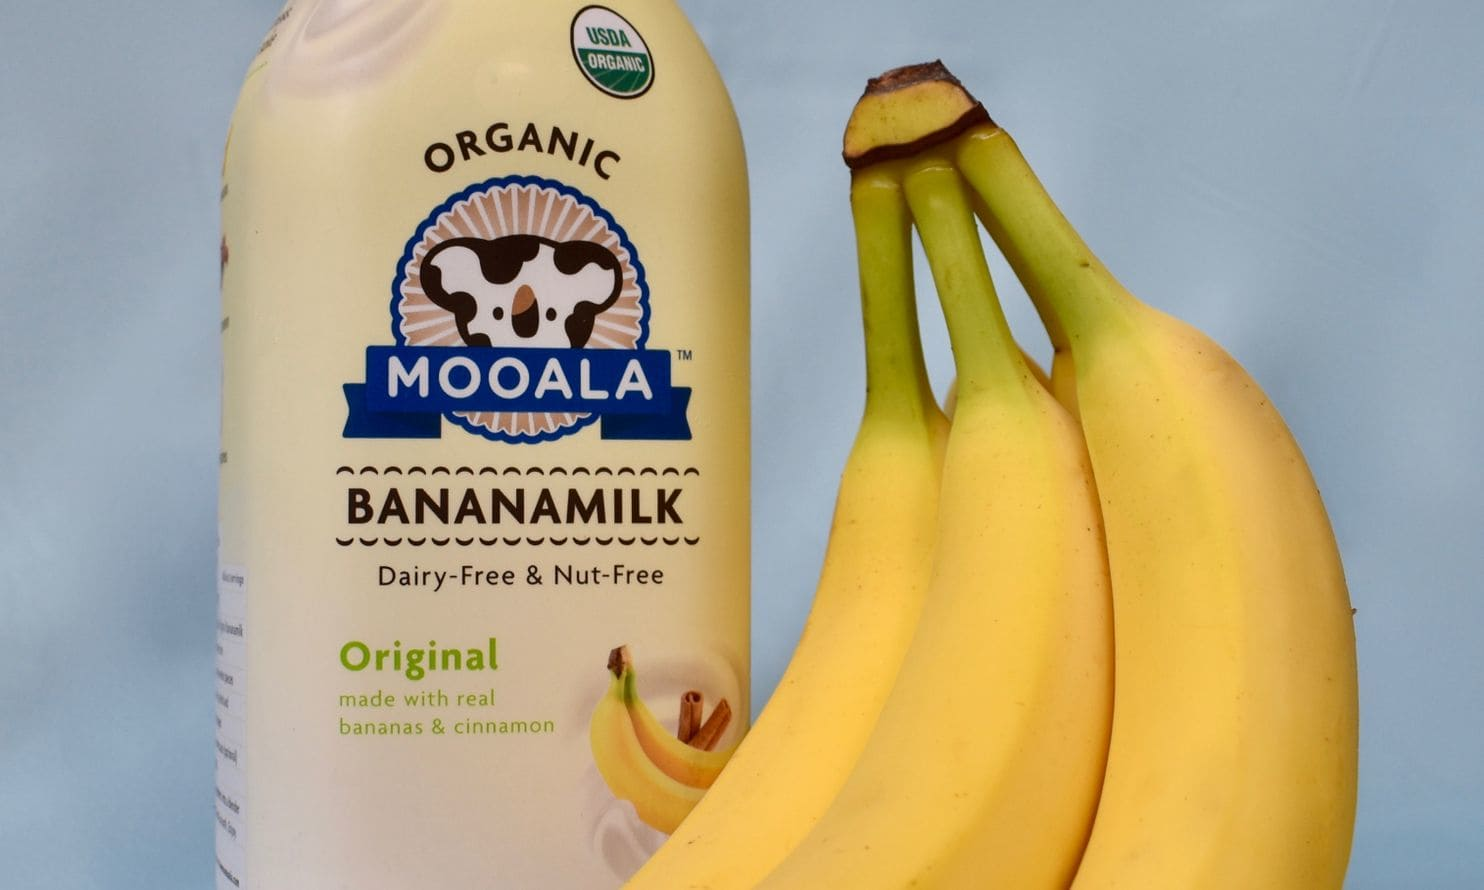 Coming to grocery shelves in 2019: Mushroom/meat mixes, pea protein and banana milk   The Washington Post